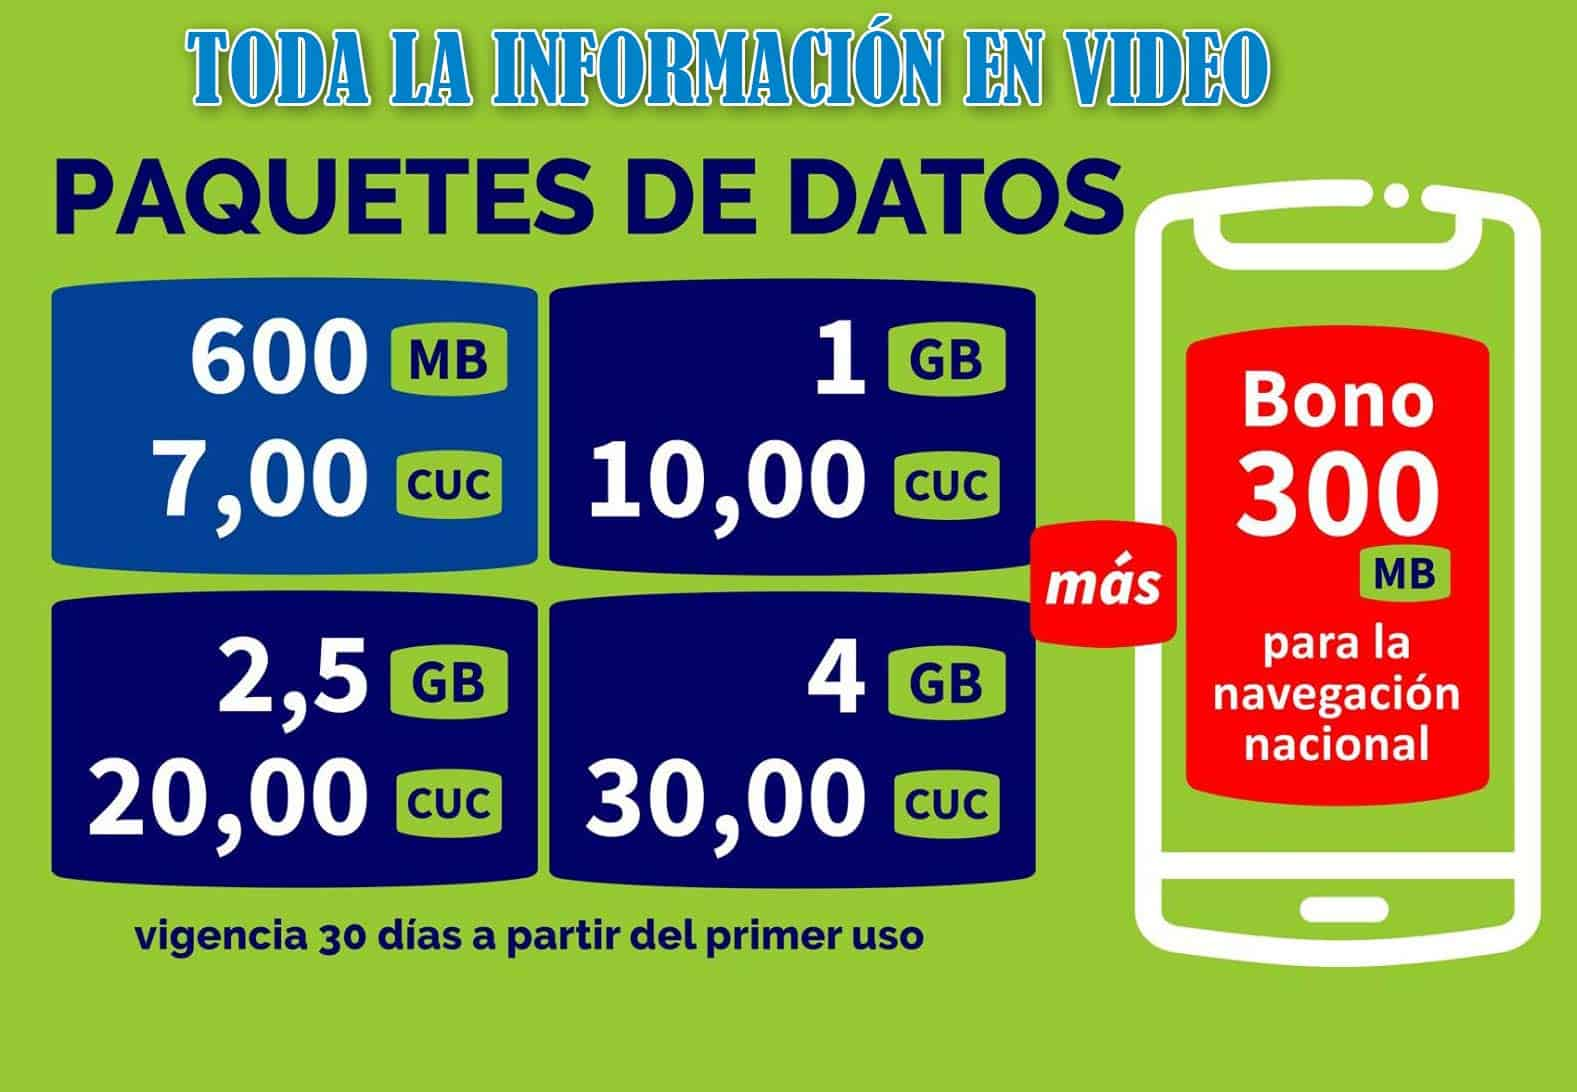 datos moviles 2018 video